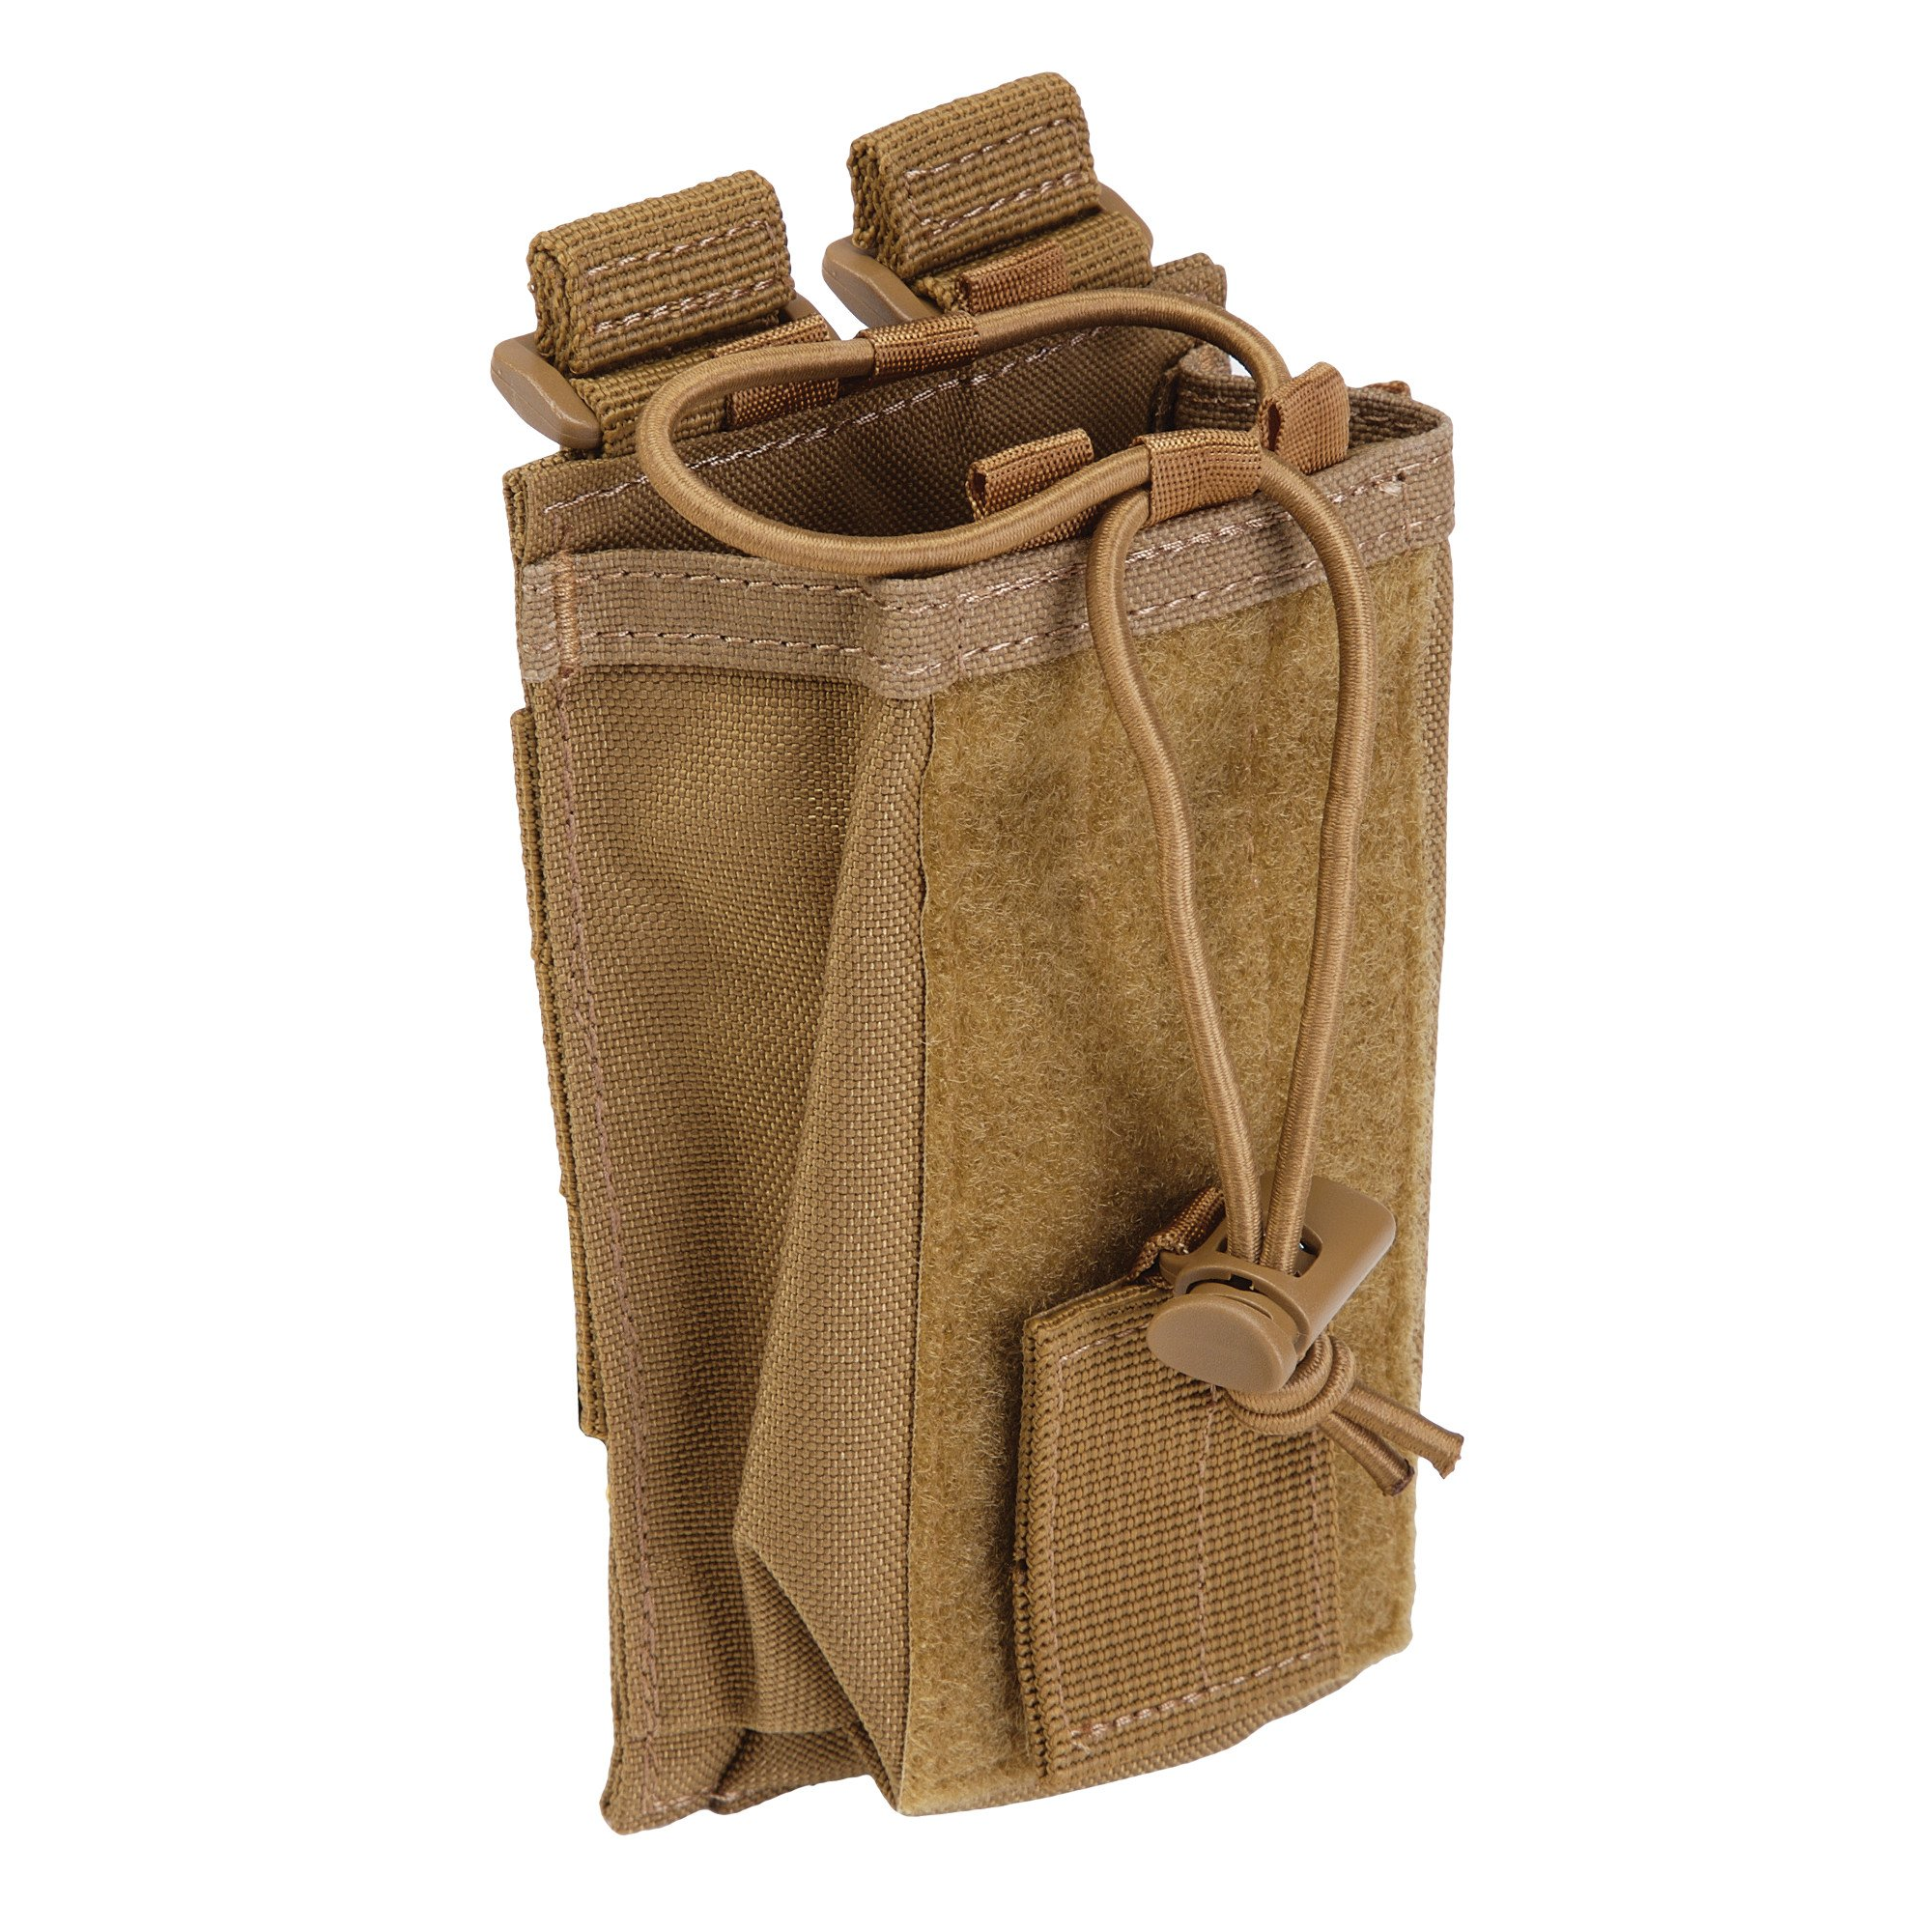 5.11 Radio Pouch Compatible with 5.11 Bags/Packs/Duffels, Style 58718, Flat Dark Earth by 5.11